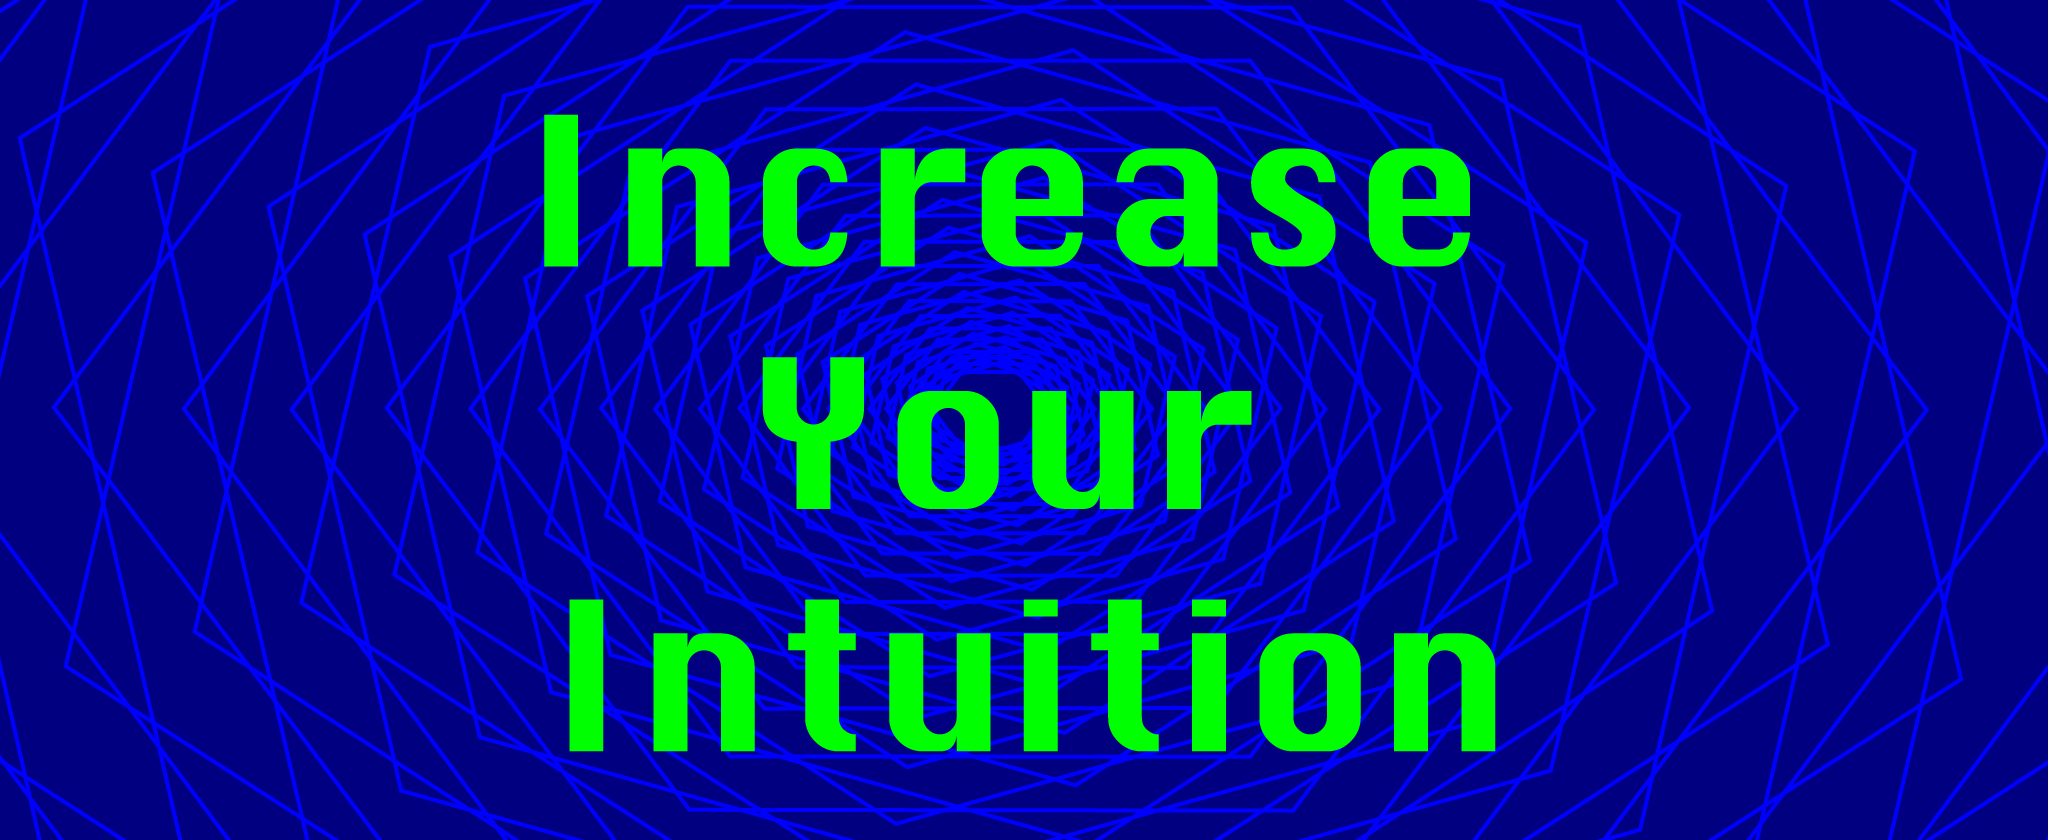 increase-your-intuition